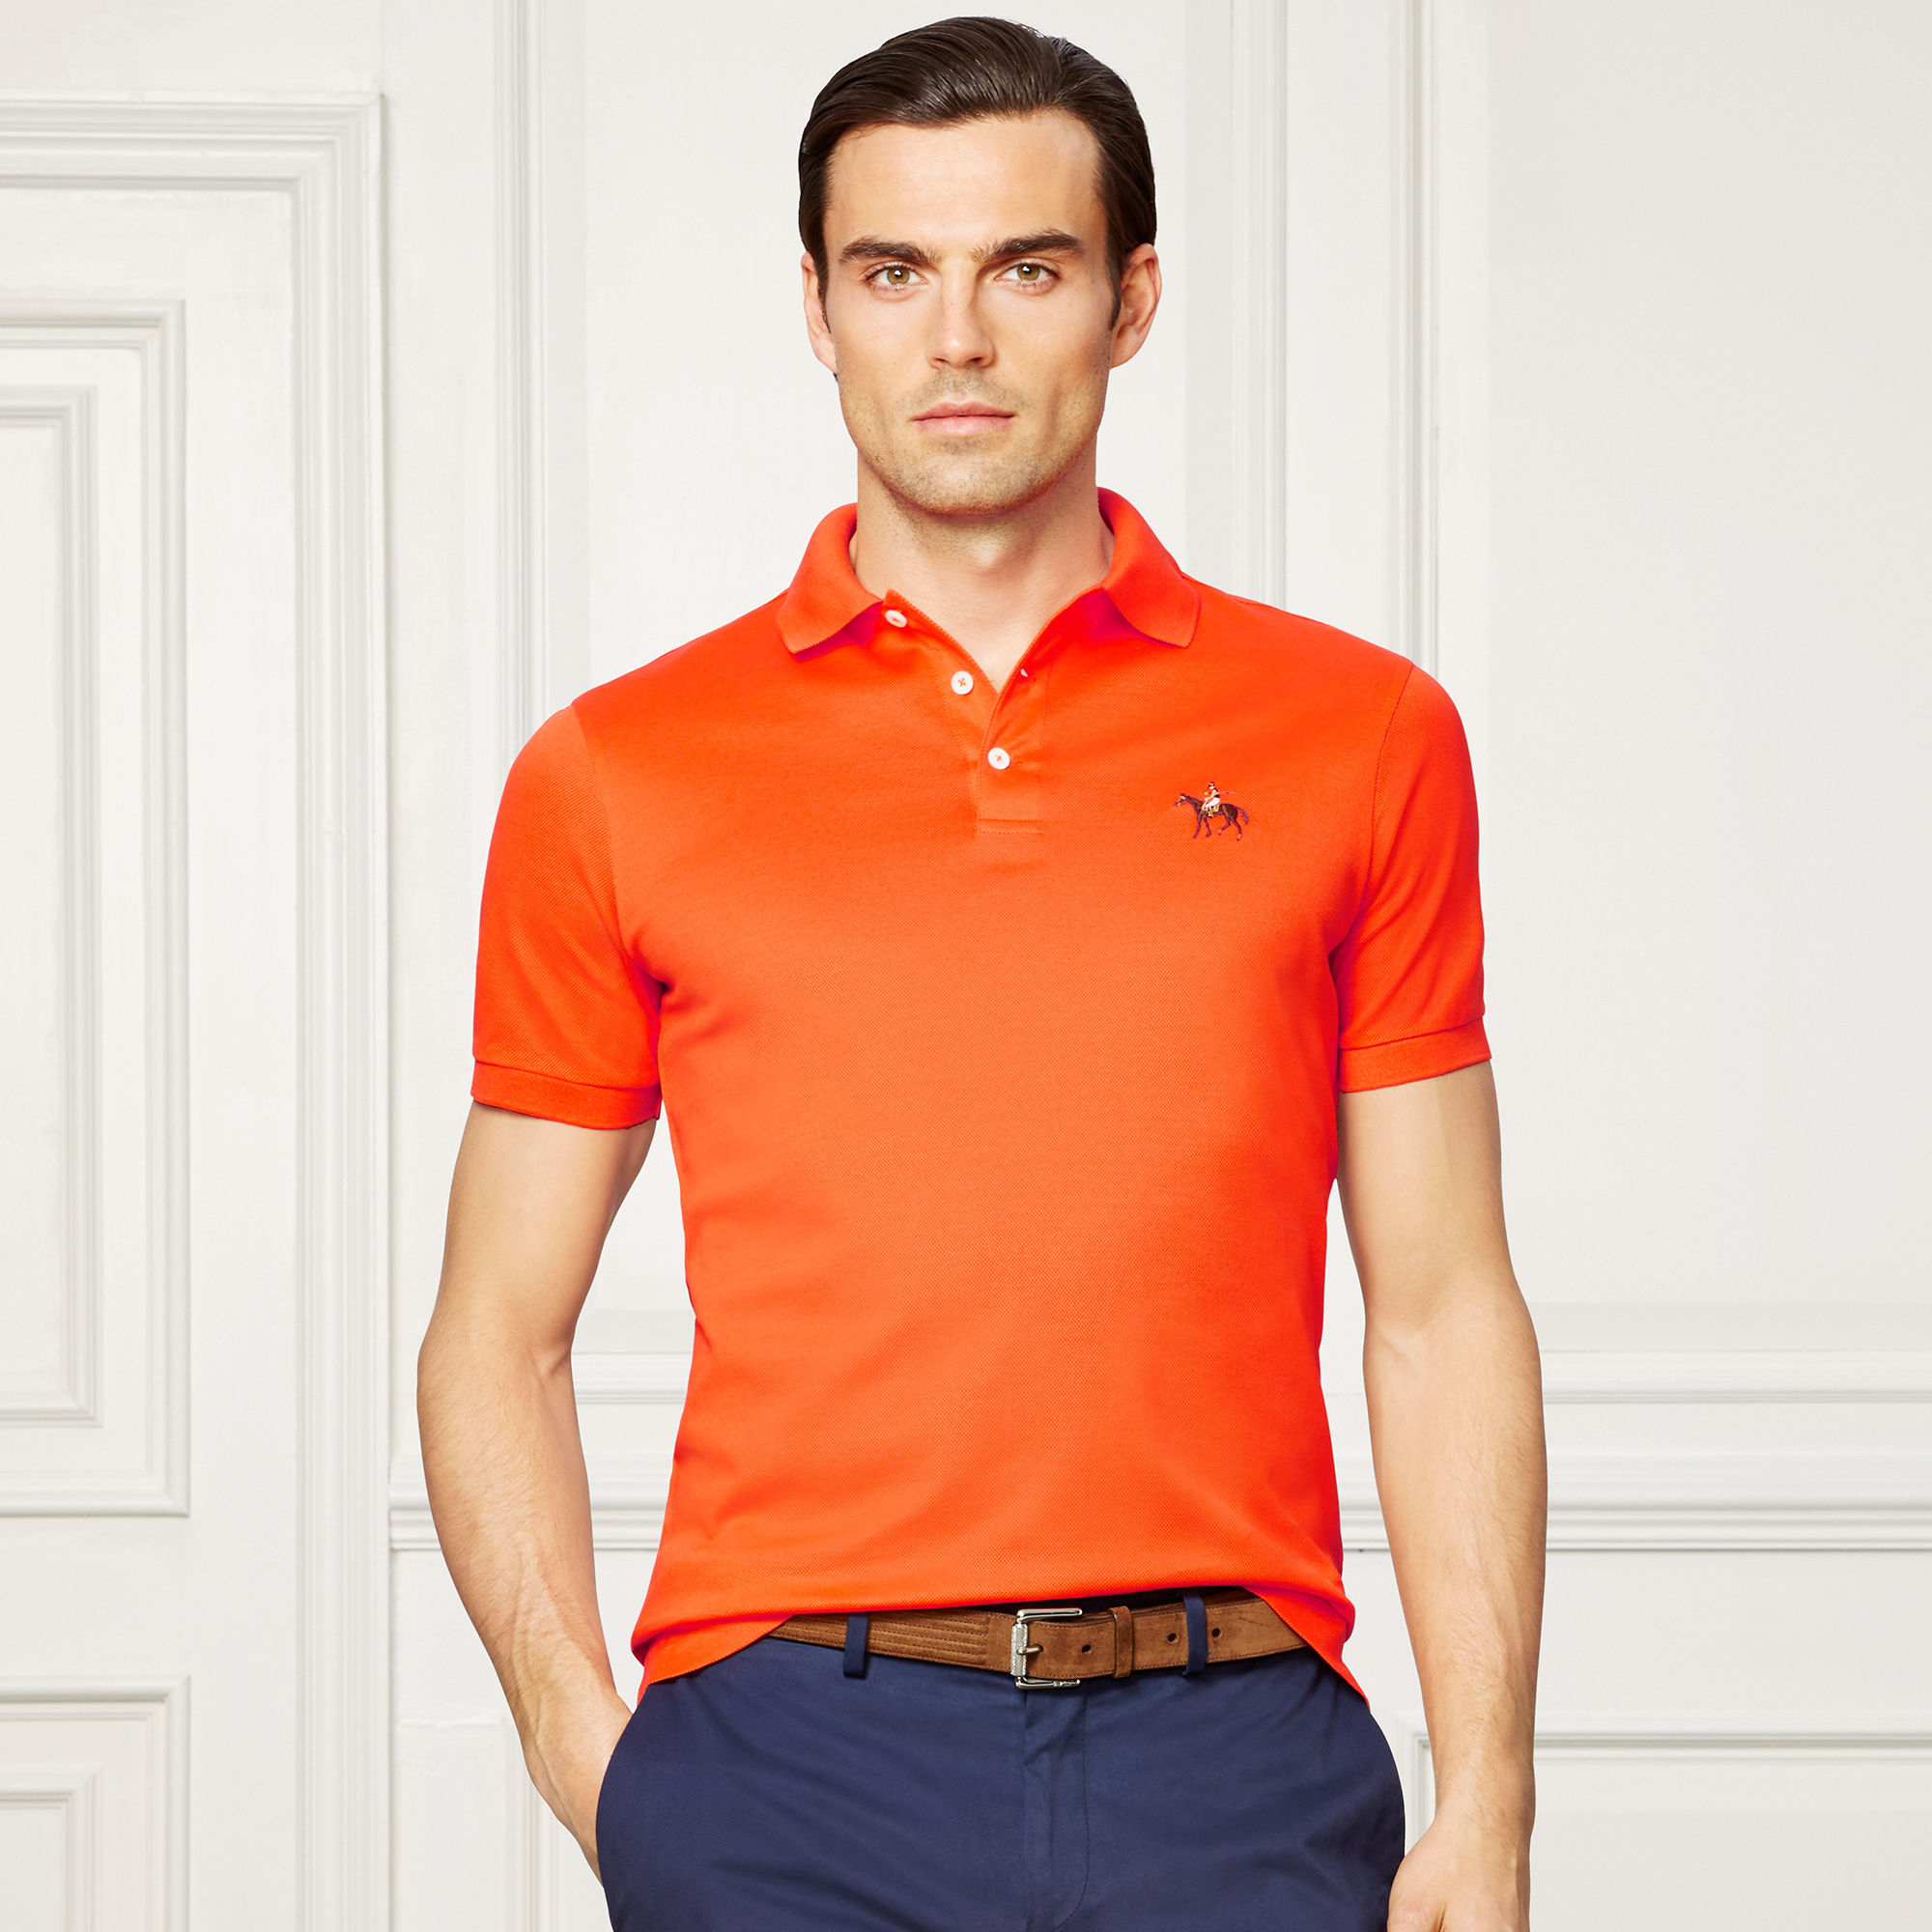 Lyst - Ralph Lauren Purple Label Custom-fit Piqué Polo Shirt in Orange for Men